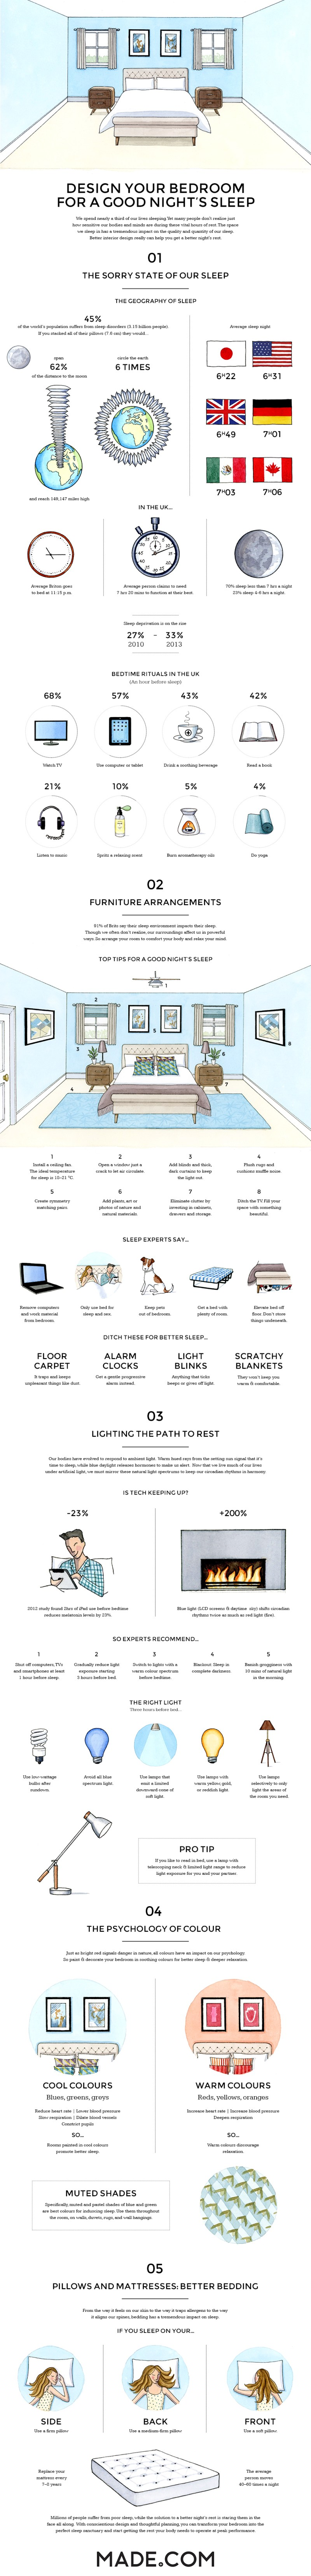 Designing a bedroom for a good night's sleep (Source: Made.com)